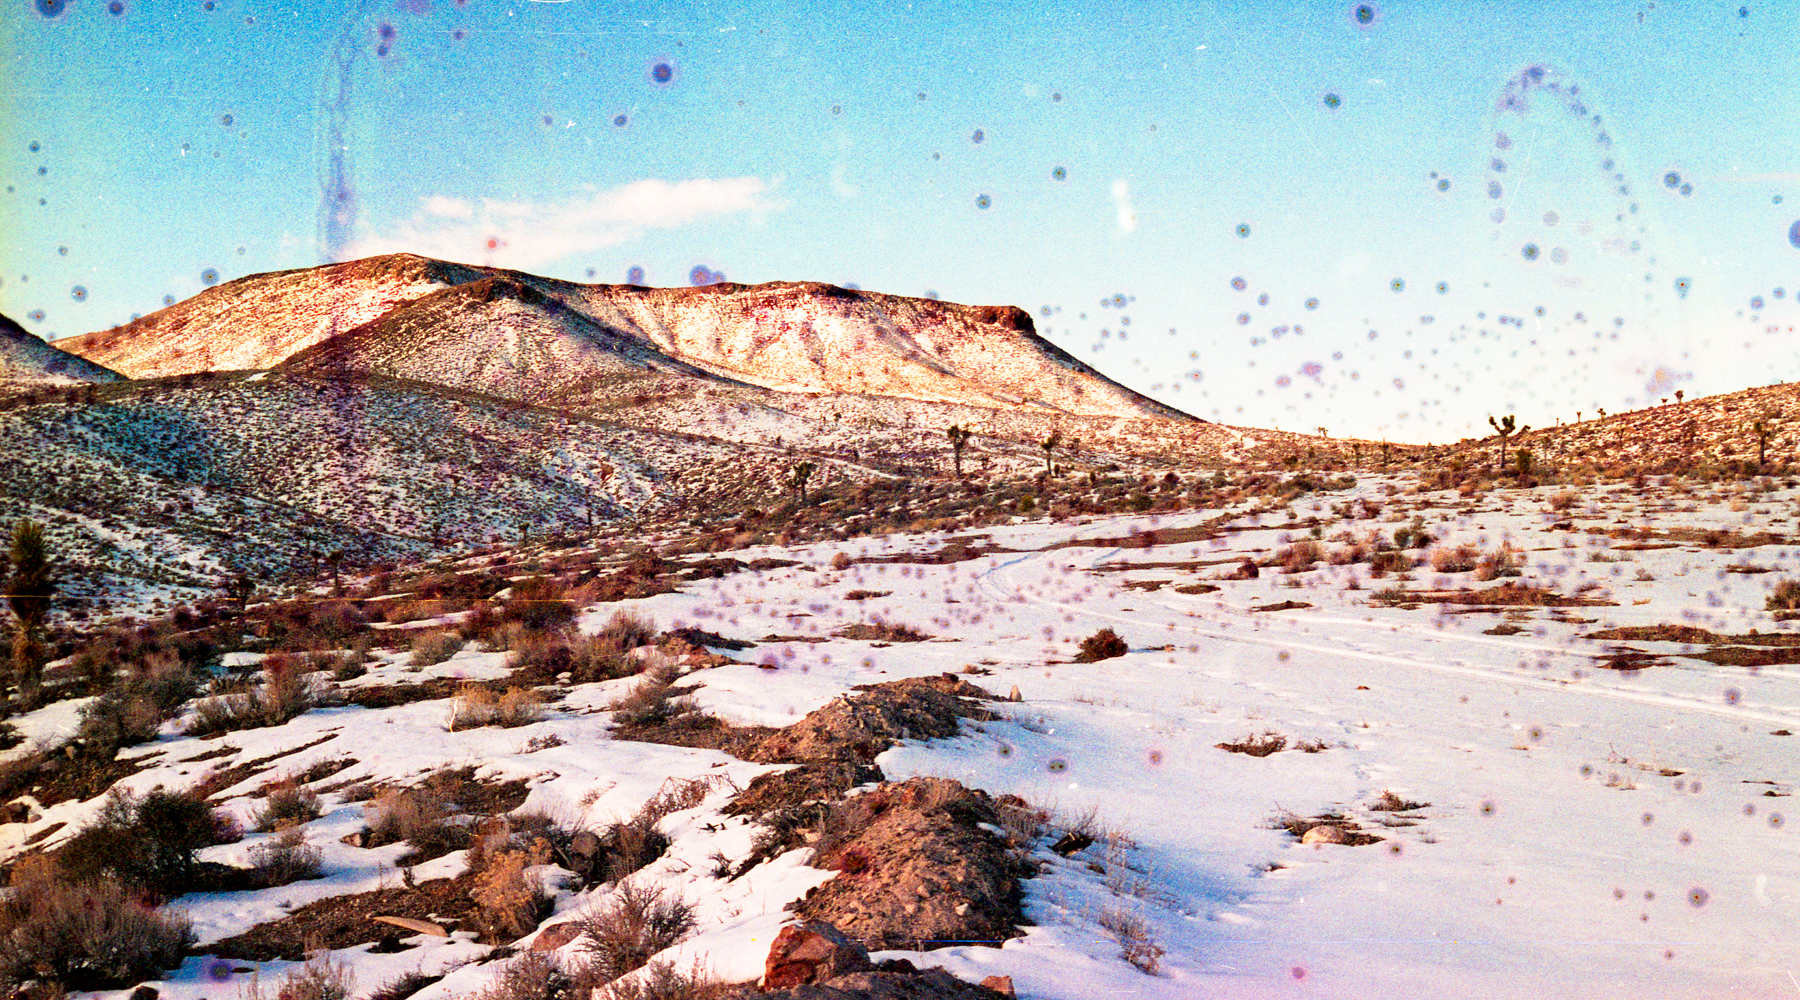 Landscape just outside of Goldfield, NV, film soaked in snow